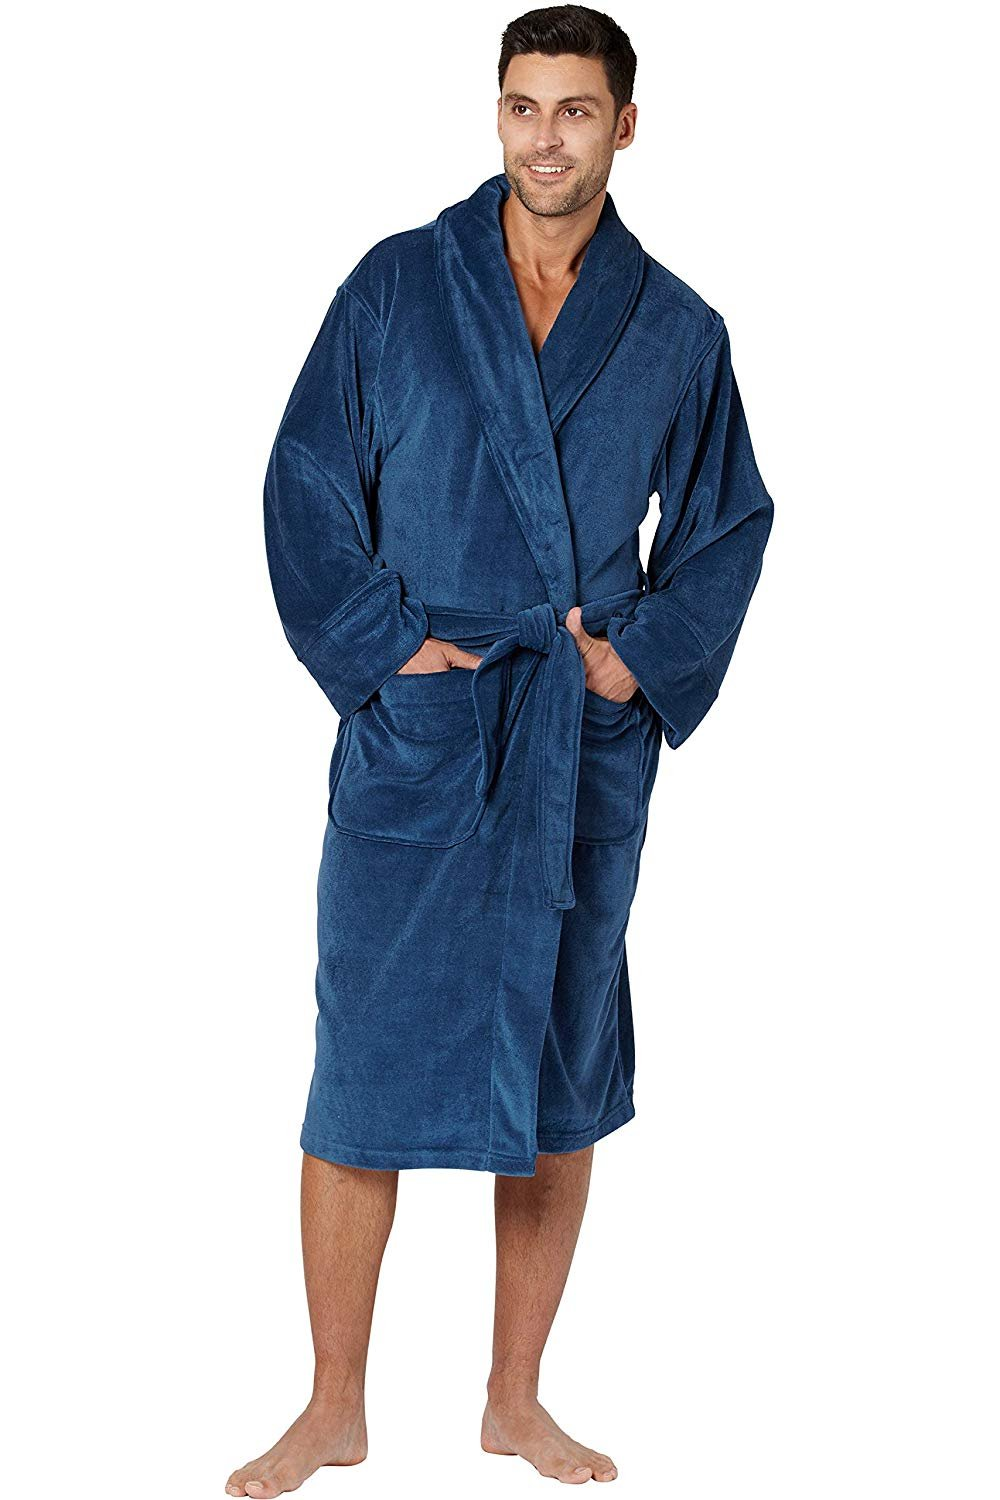 outlet for sale beautiful and charming another chance Men's Cozy Plush Fleece Robe